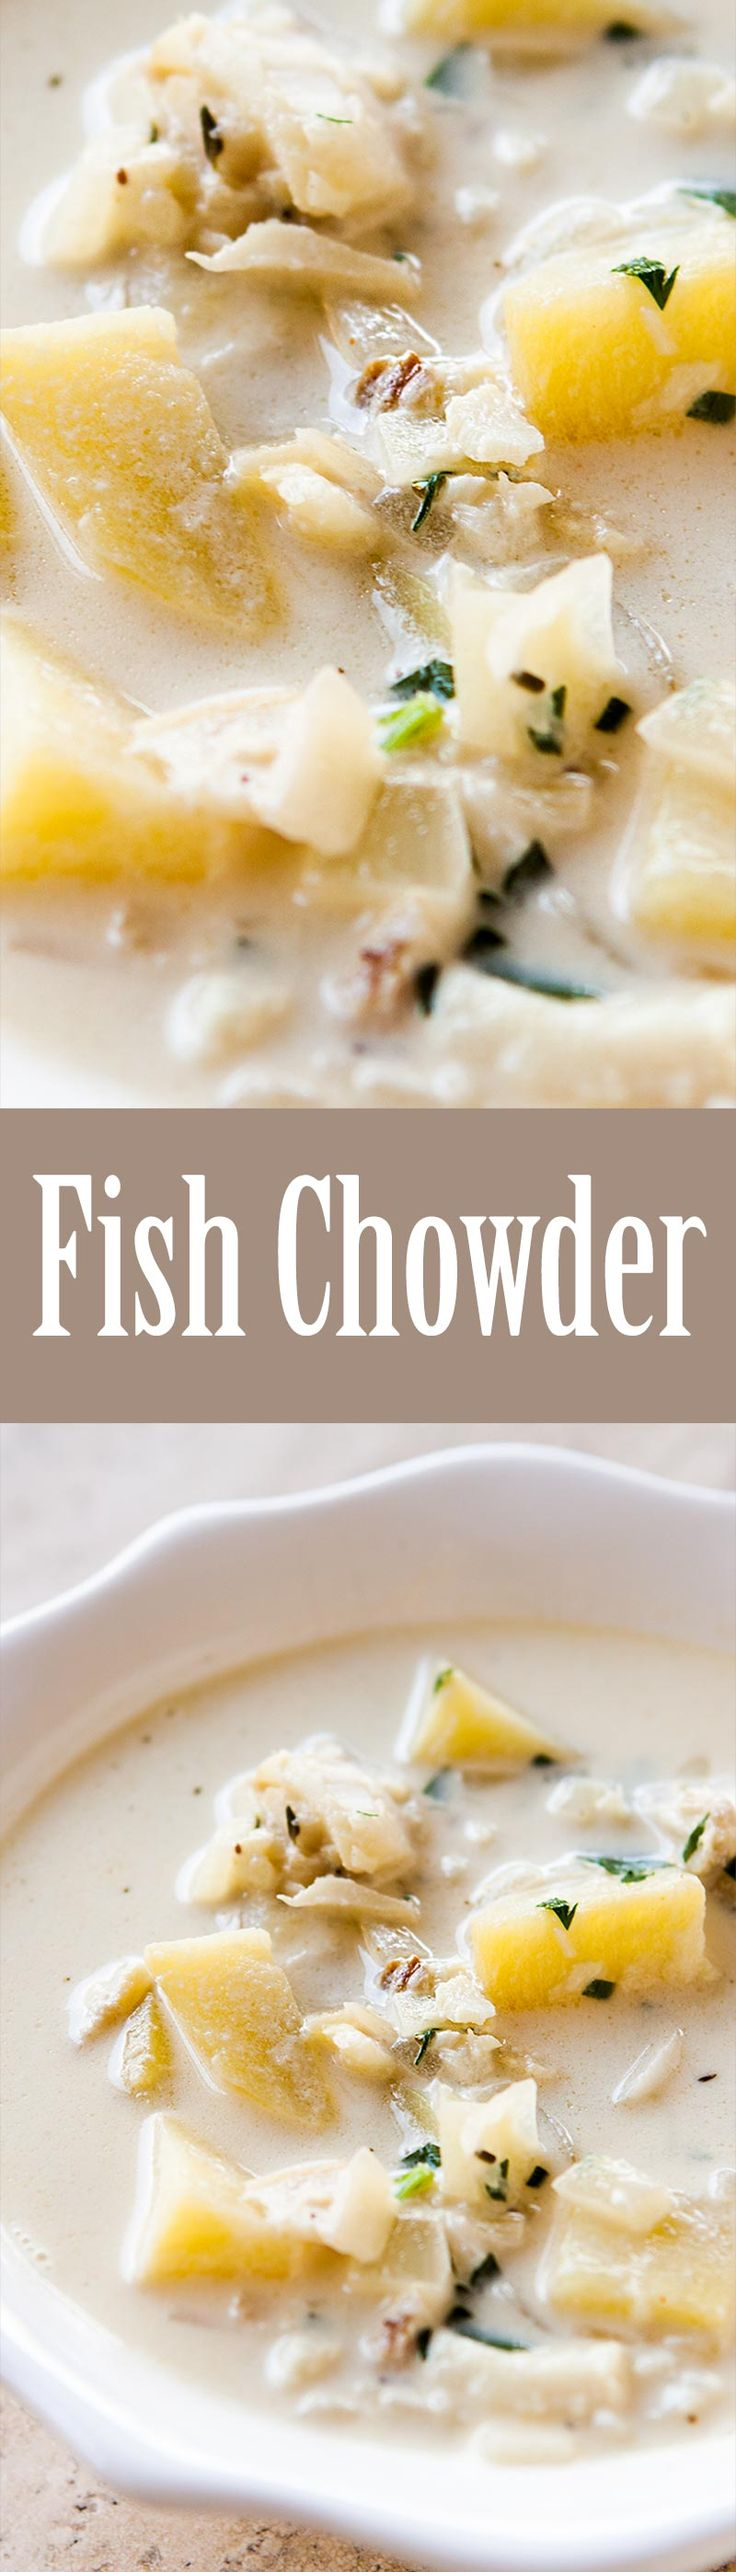 25 best ideas about fish chowder on pinterest clam for Fish chowder crock pot